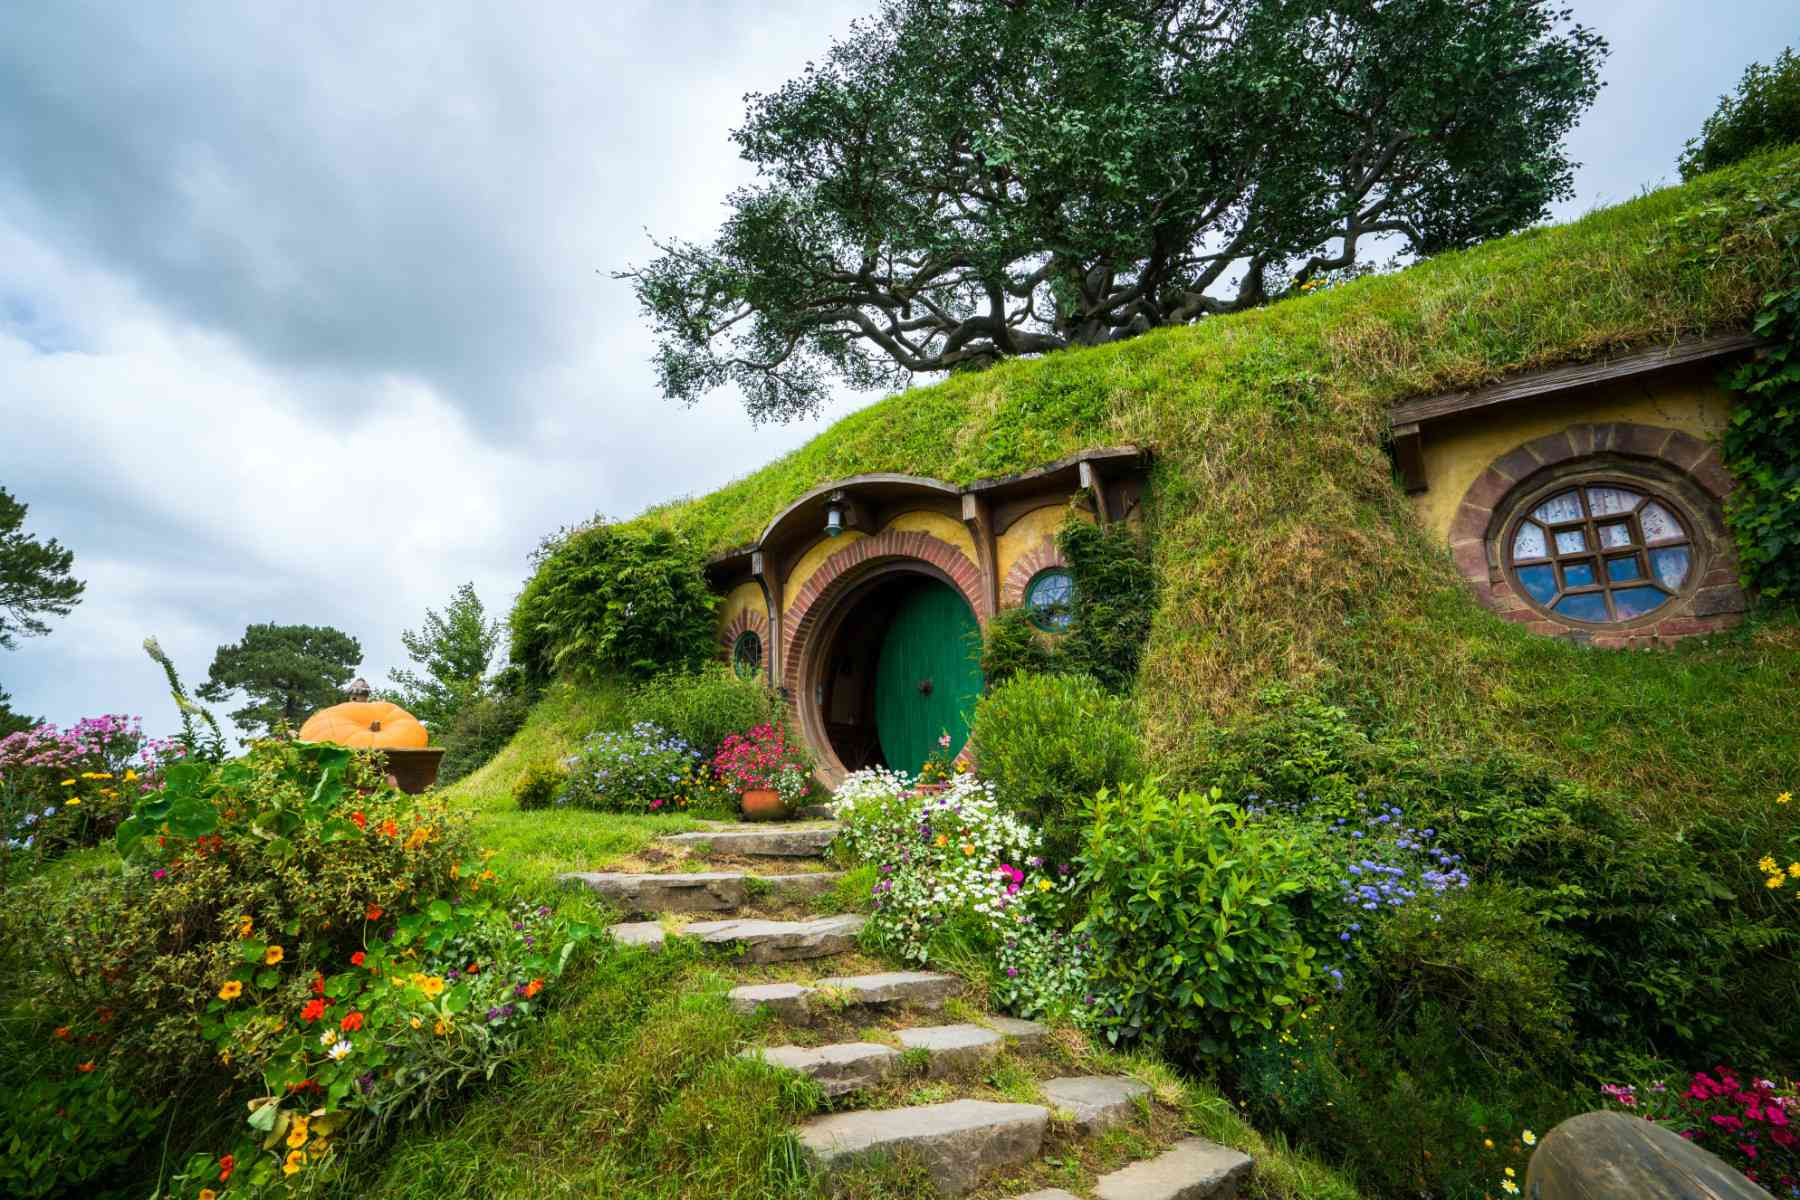 The preserved set of Bag End in Hobbiton located in New Zealand